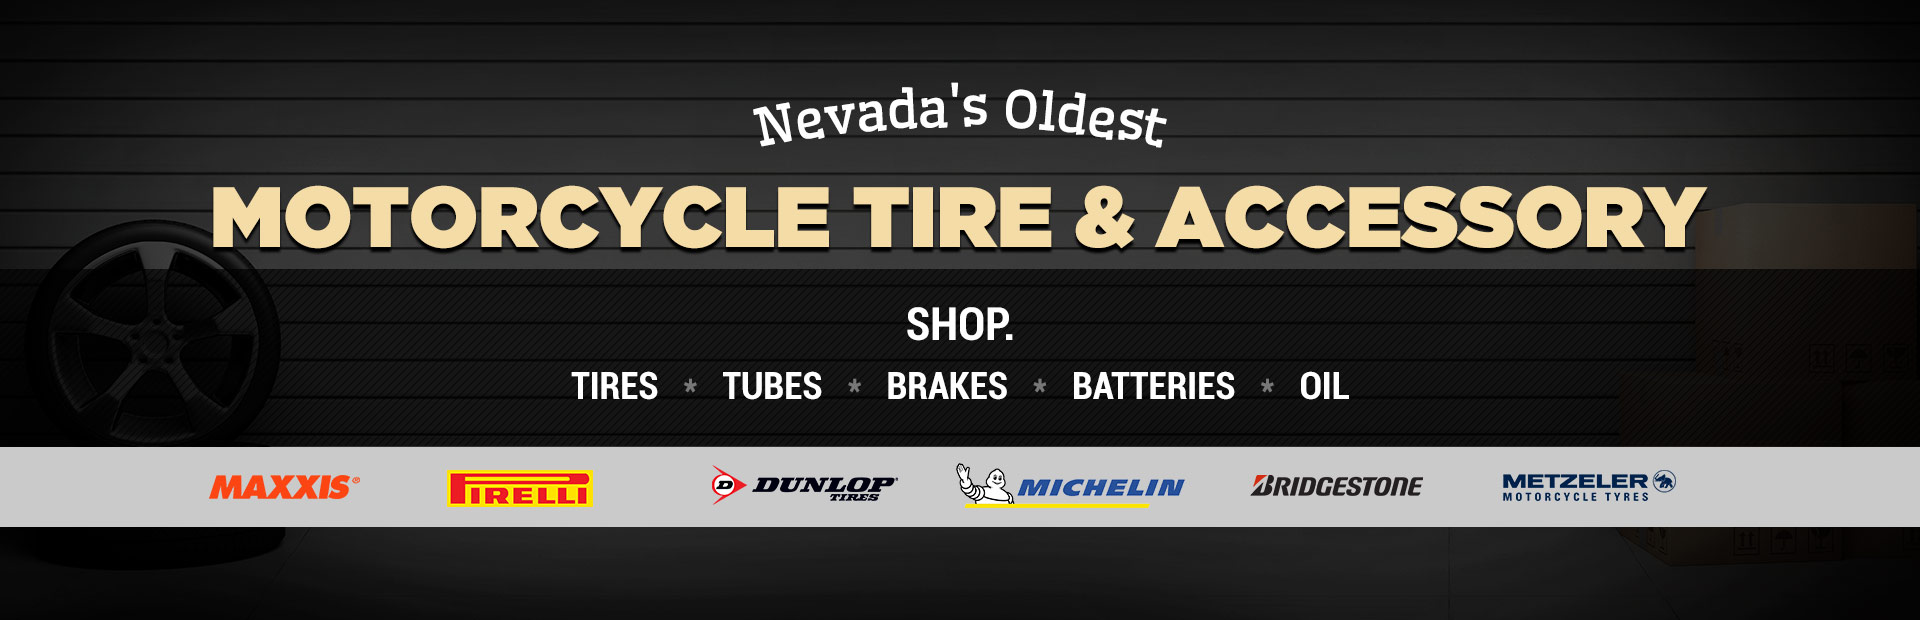 Nevada's Oldest Motorcycle Tire & Accessory